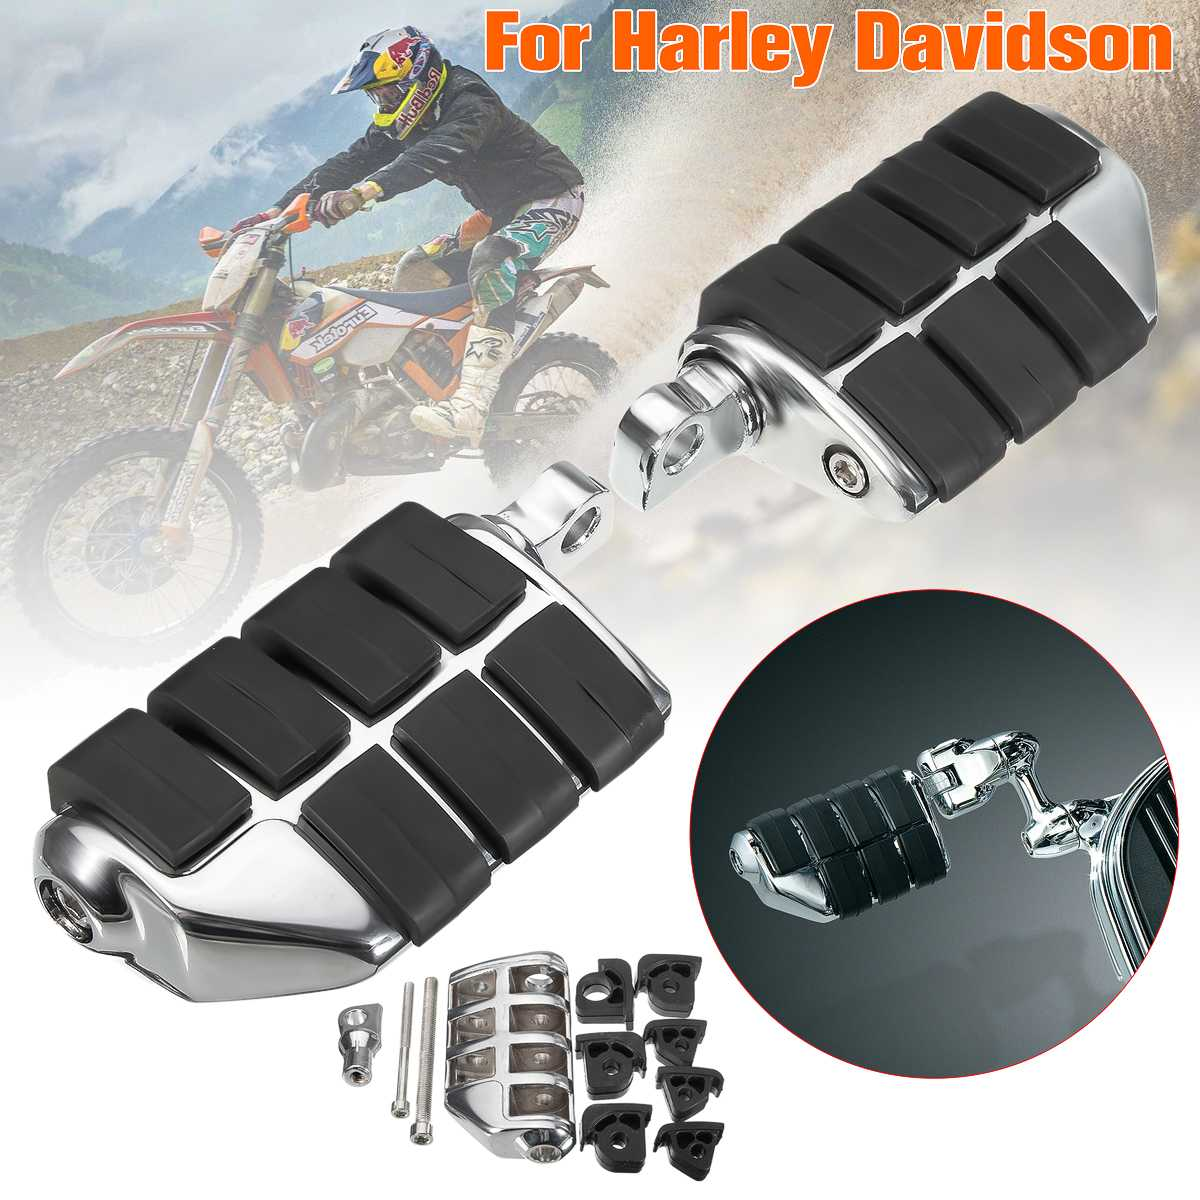 For Harley Sportster Davison SOFTAIL/DYNA 1 Pair Chrome Black Mount Rubber Motorcycle Front&Rear Footrest Foots Pegs Pedals